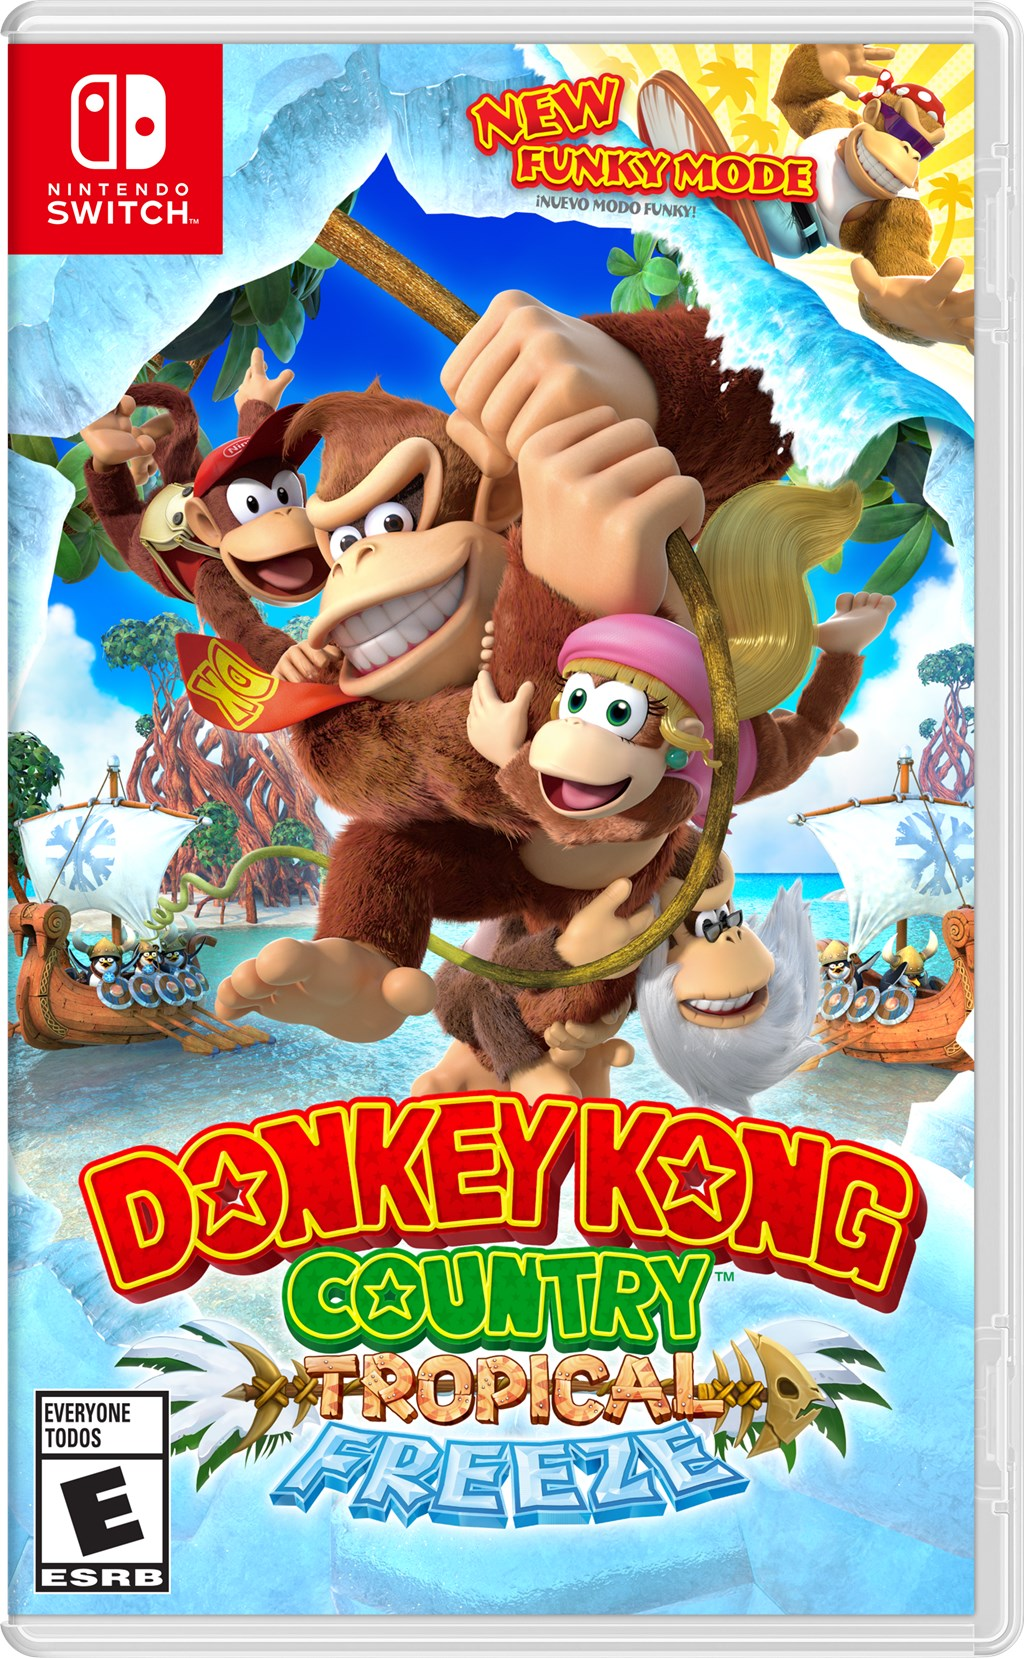 Donkey Kong Country: Tropical Freeze announced for Switch